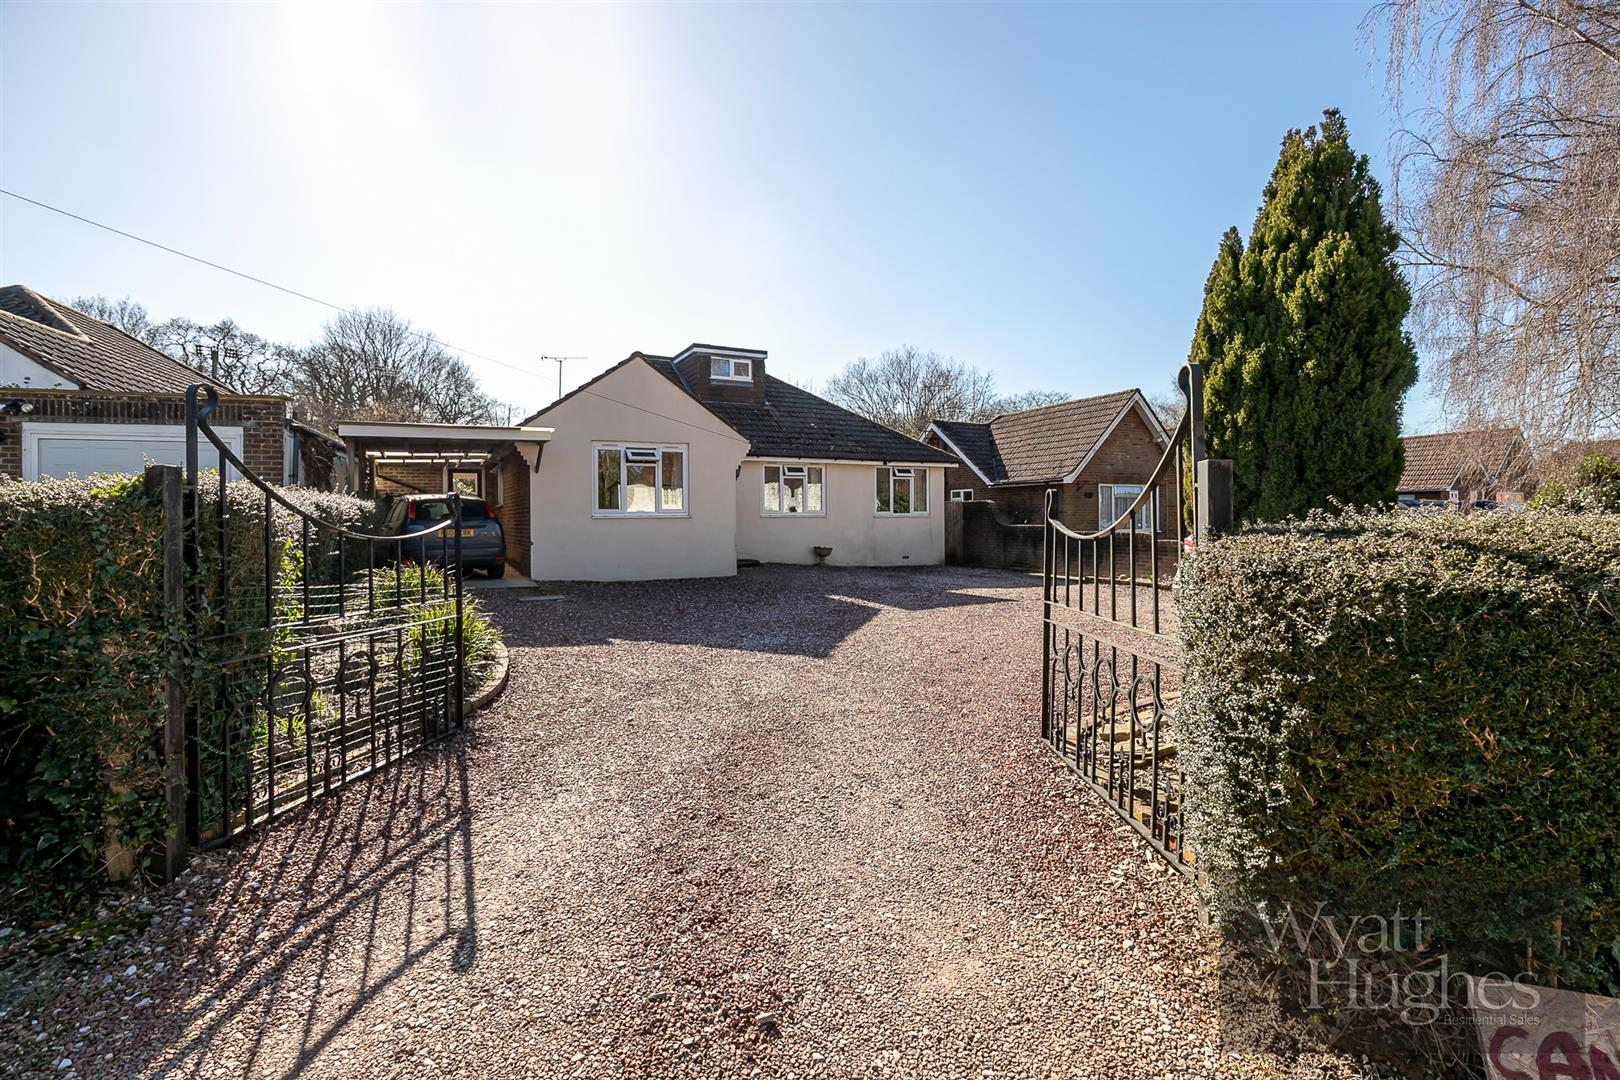 3 bed detached bungalow for sale in Skinners Lane, Battle, TN33